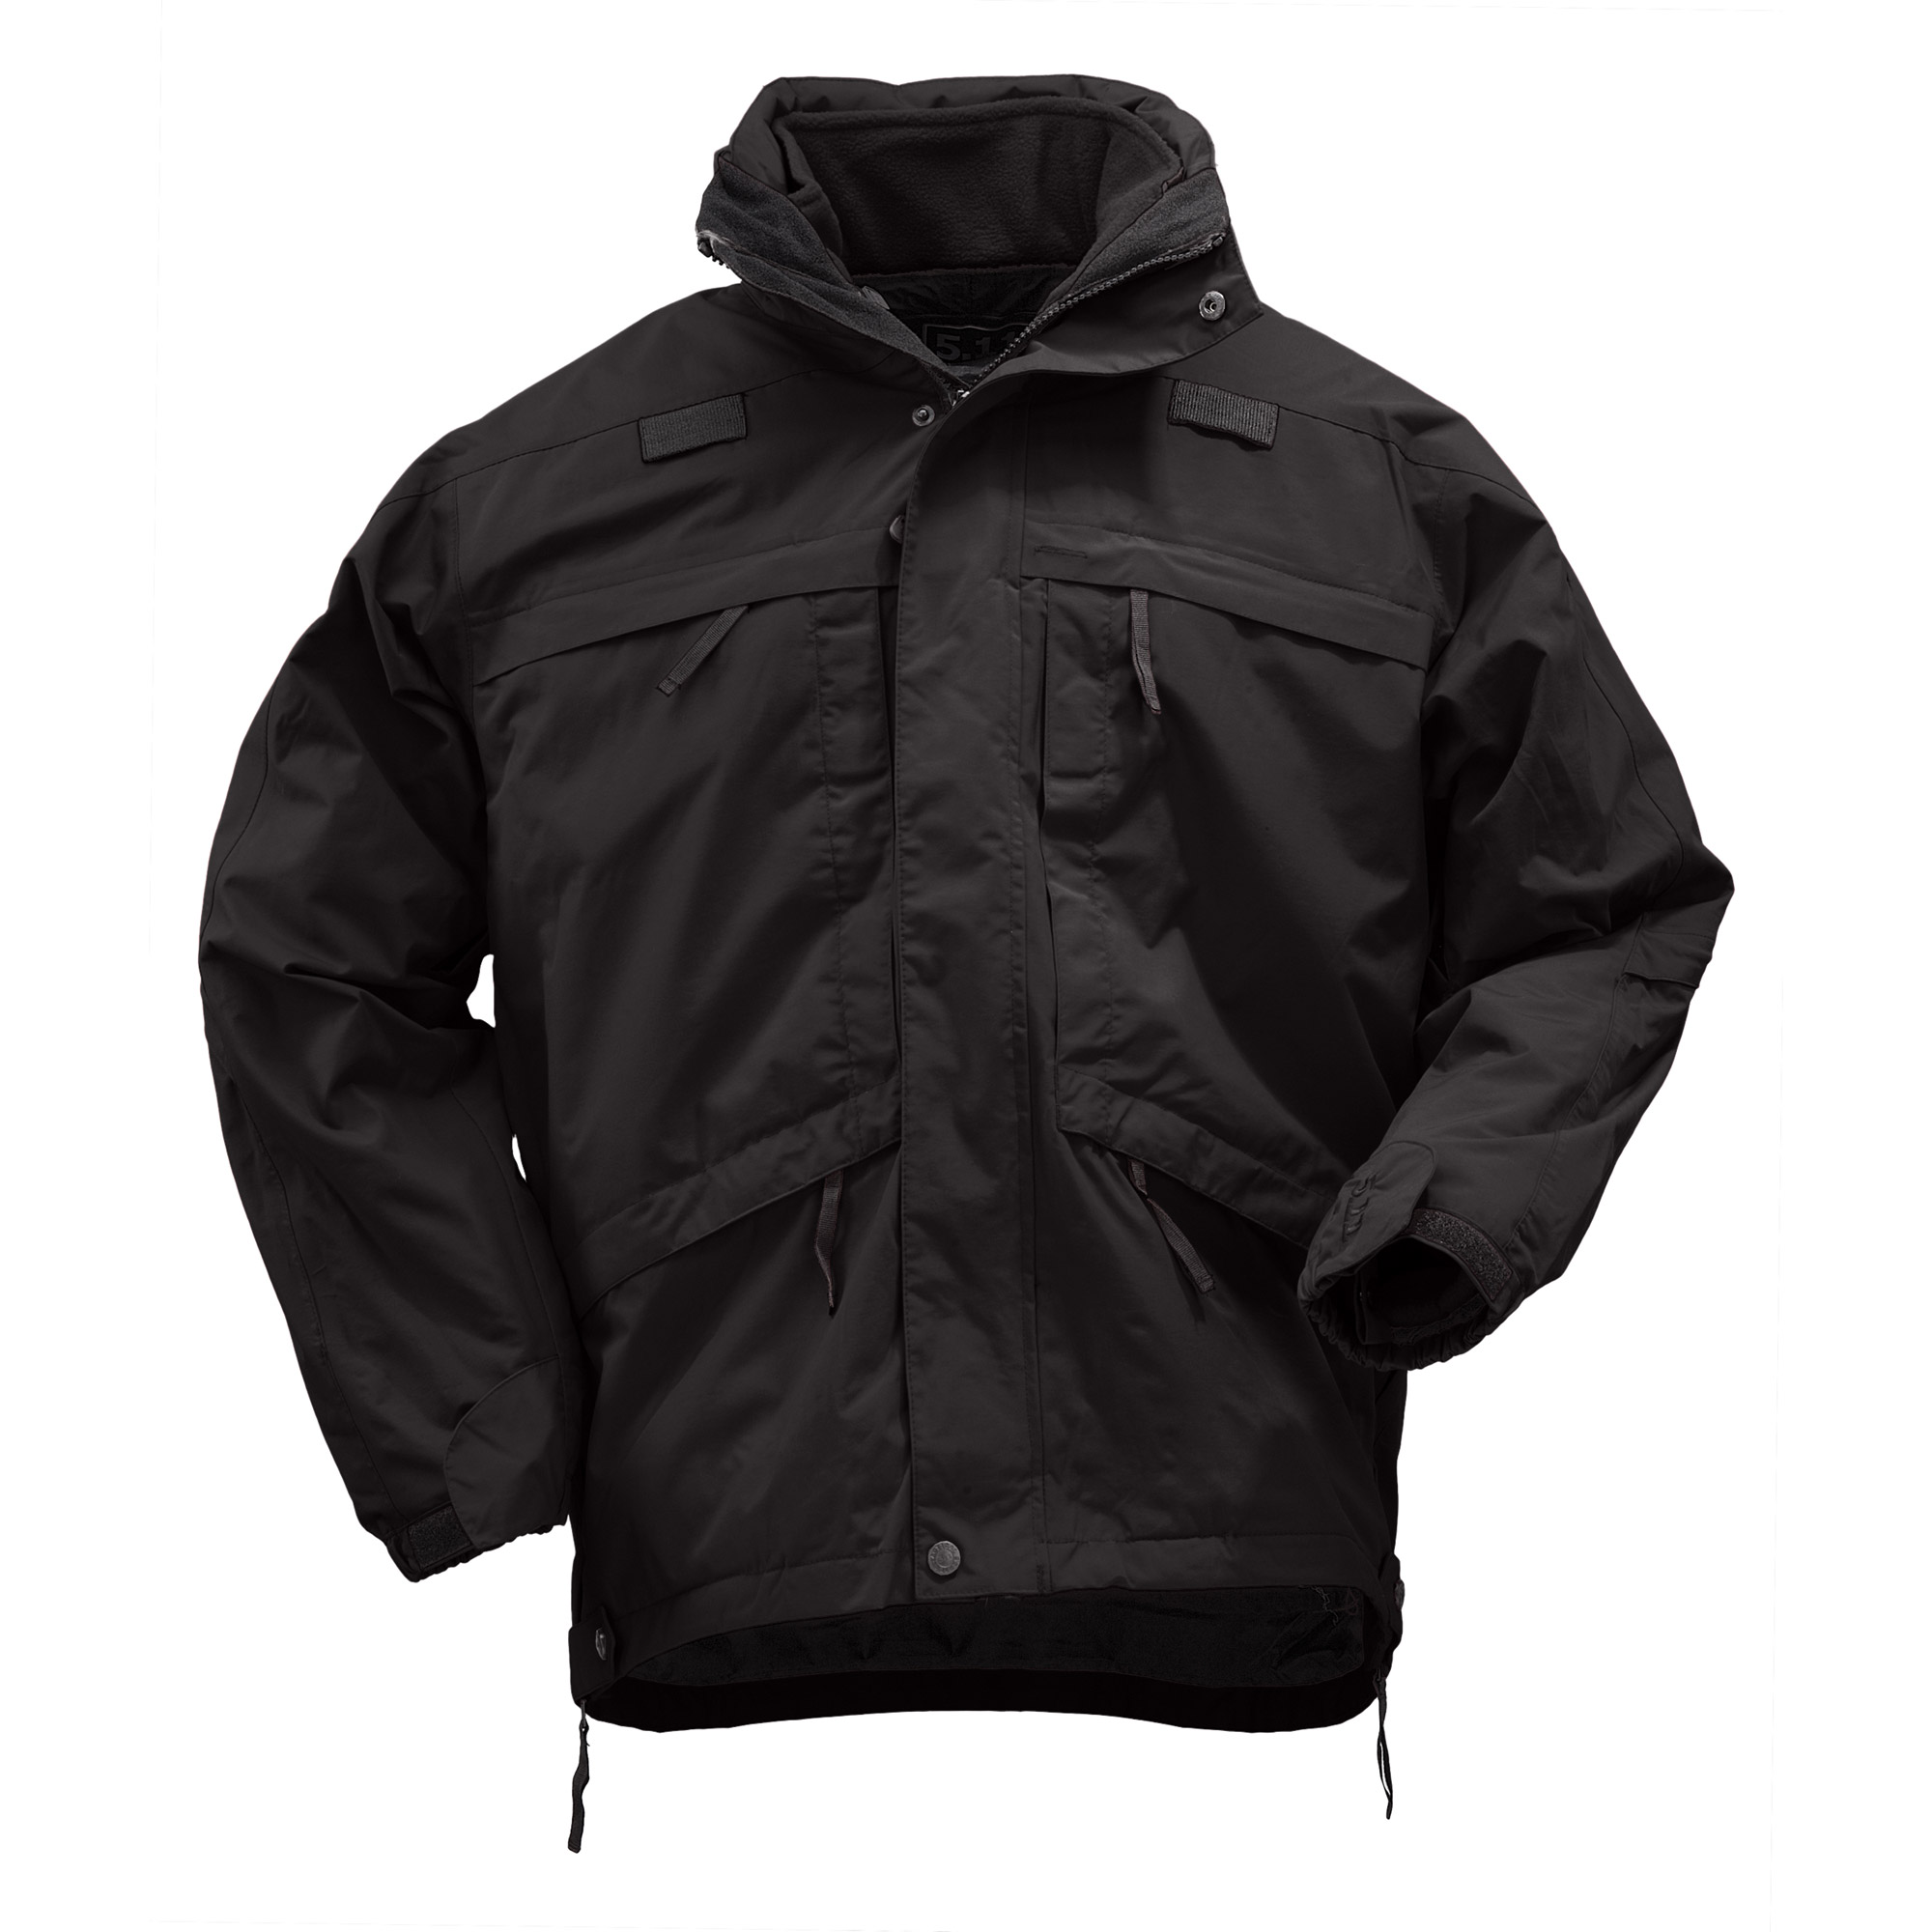 Куртка 5.11 Tactical 3-in-1 Parka